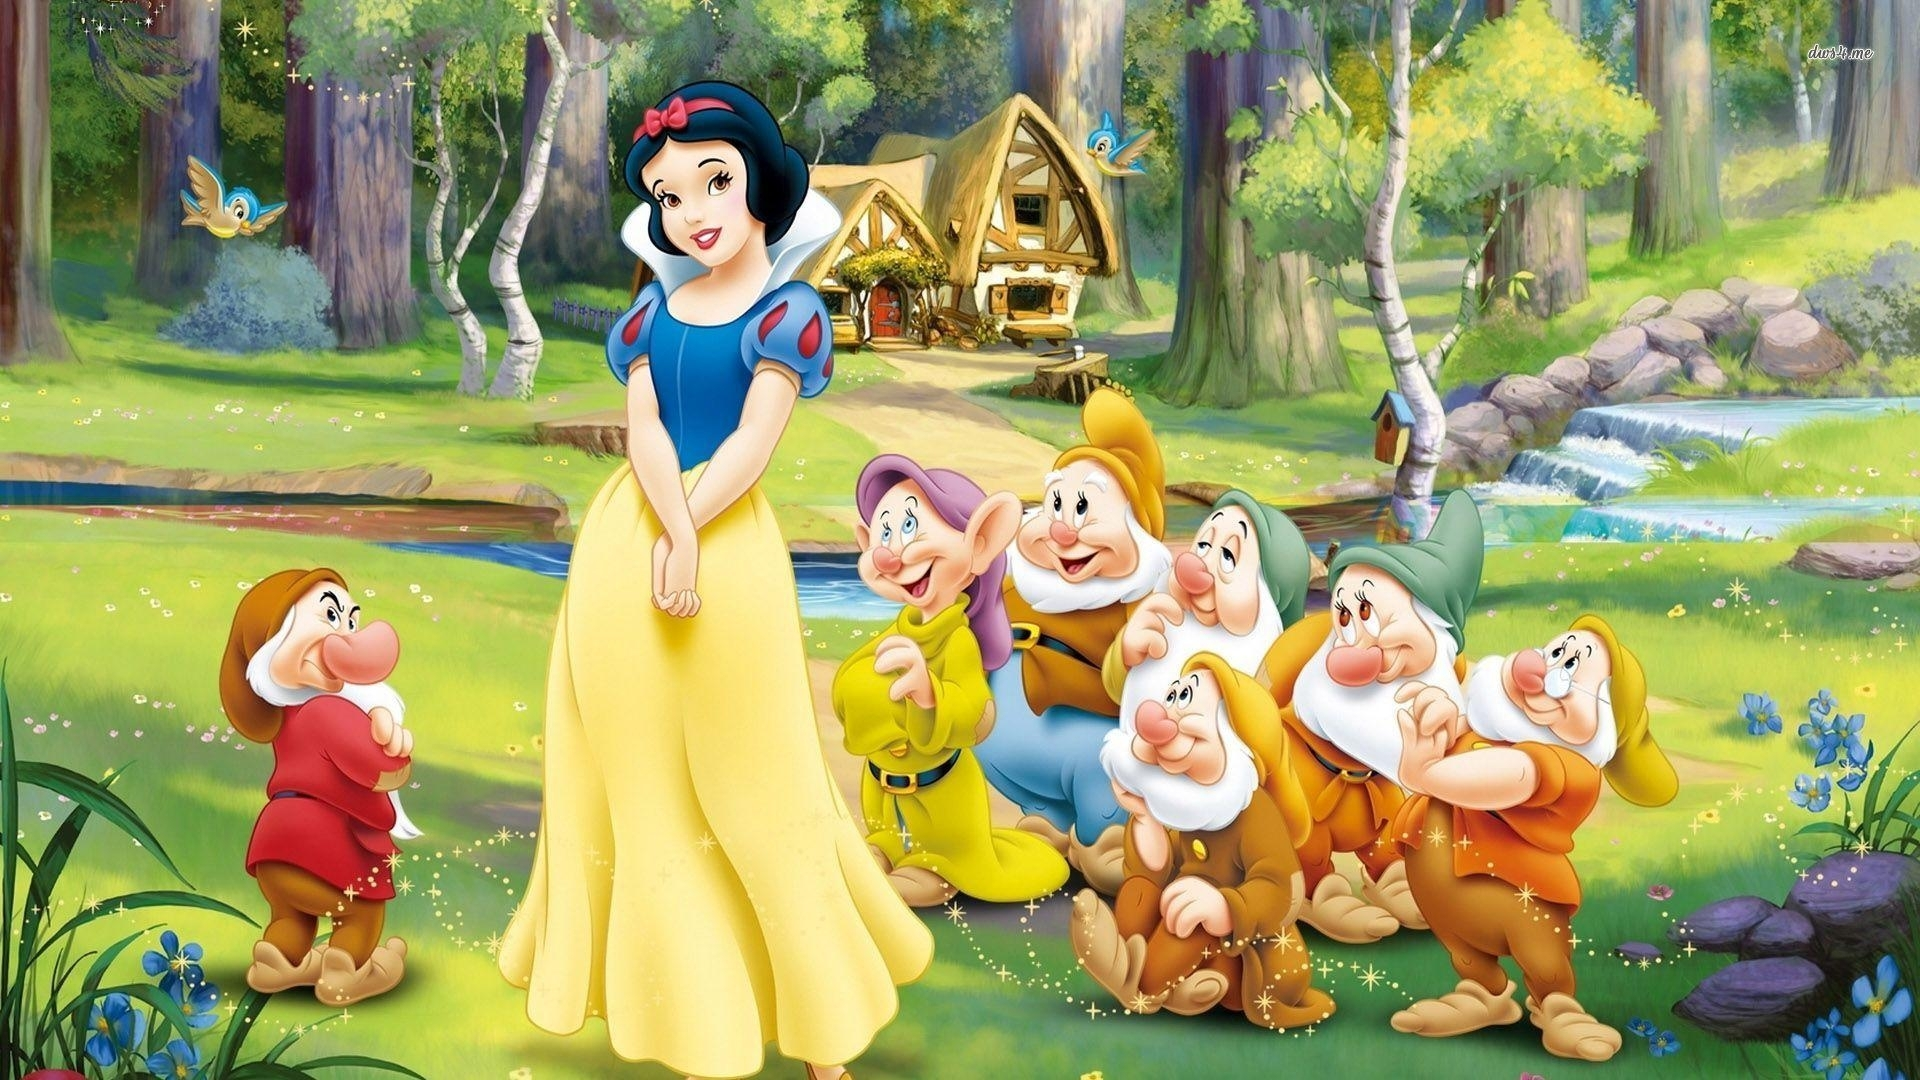 snow white and the seven dwarfs wallpapers - wallpaper cave